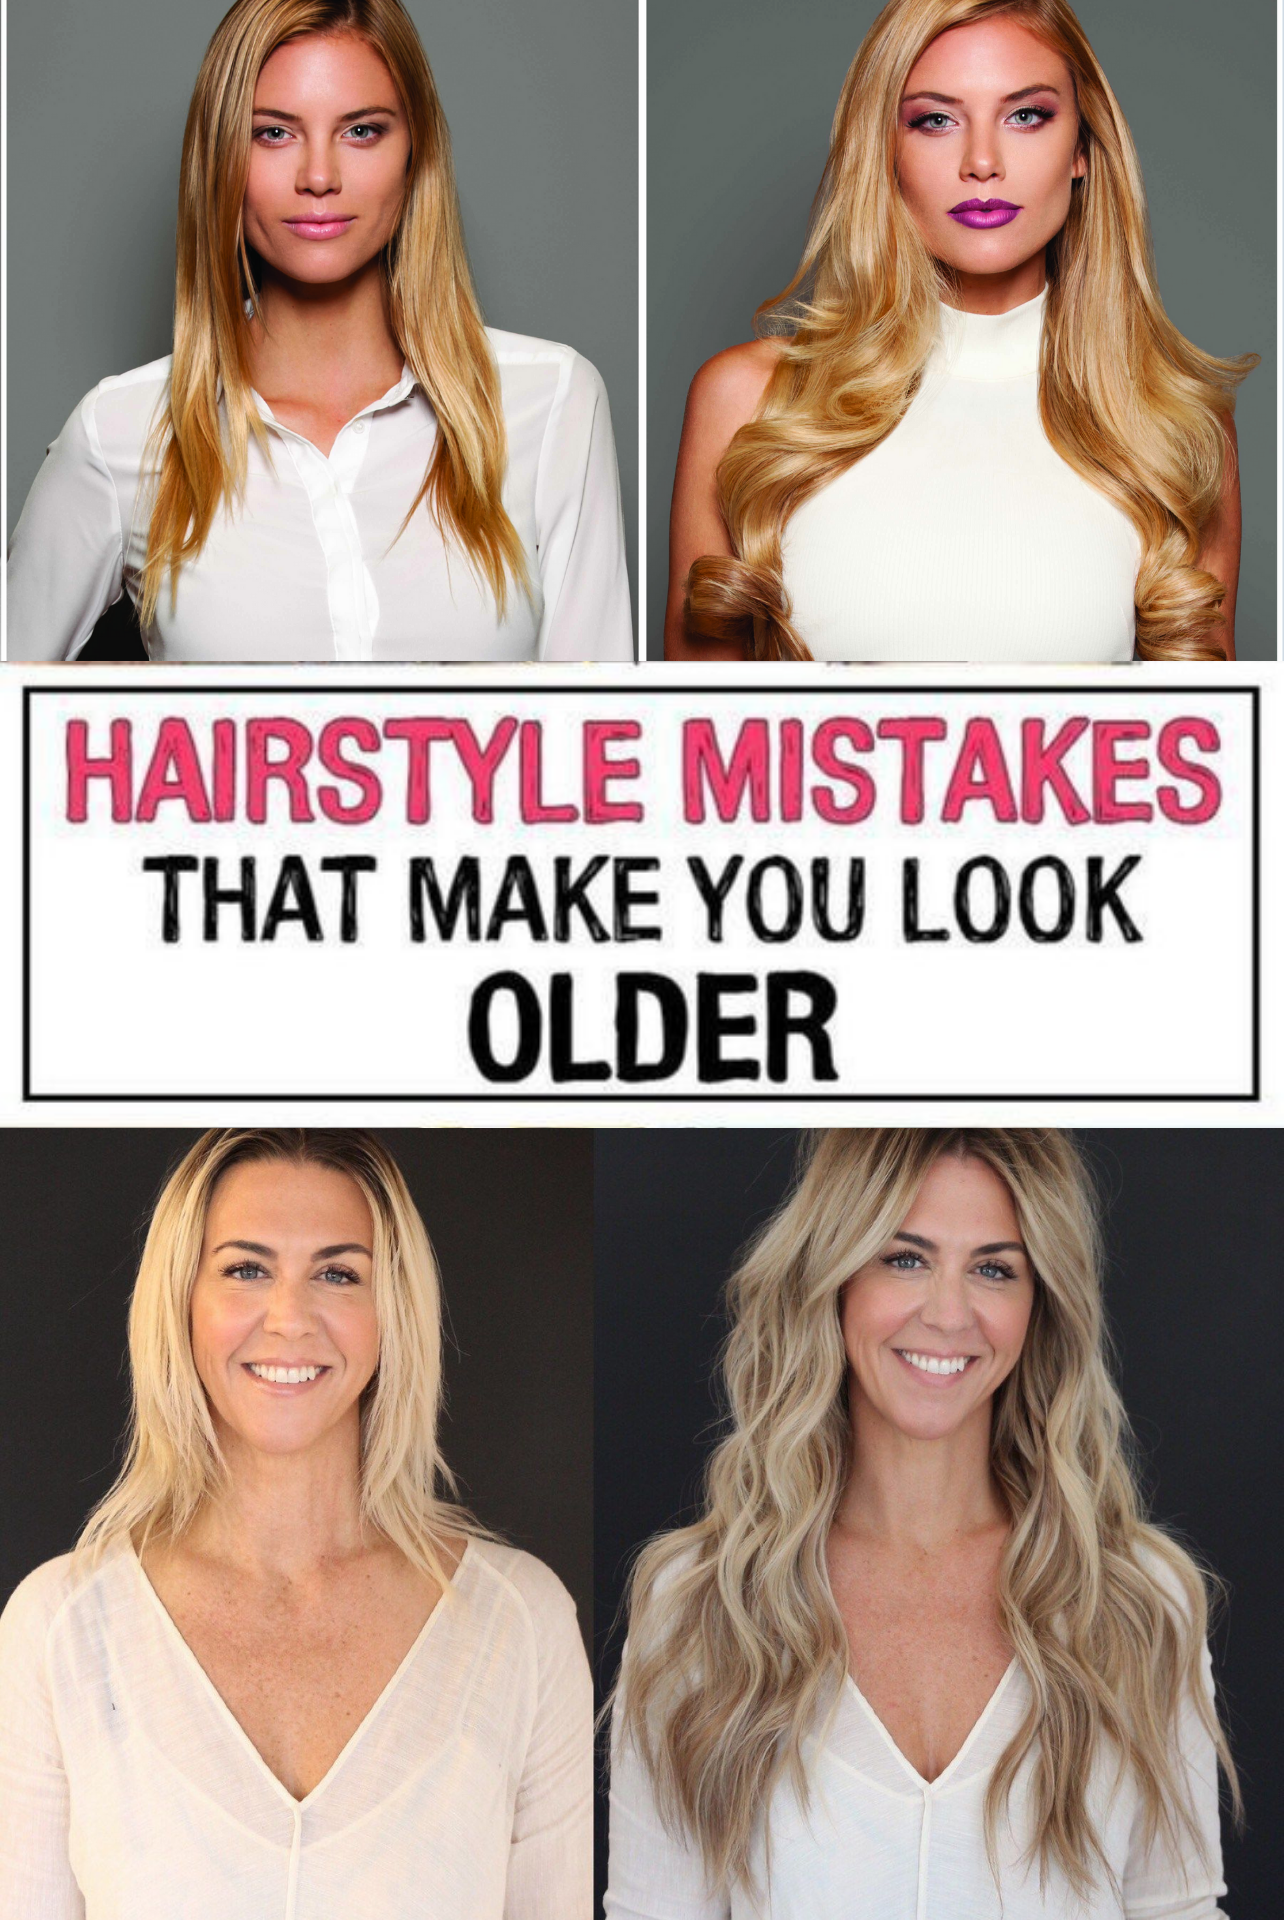 37 Hairstyle Mistakes That Are Aging You In 2020 Hair Mistakes Mom Hairstyles Hairstyle